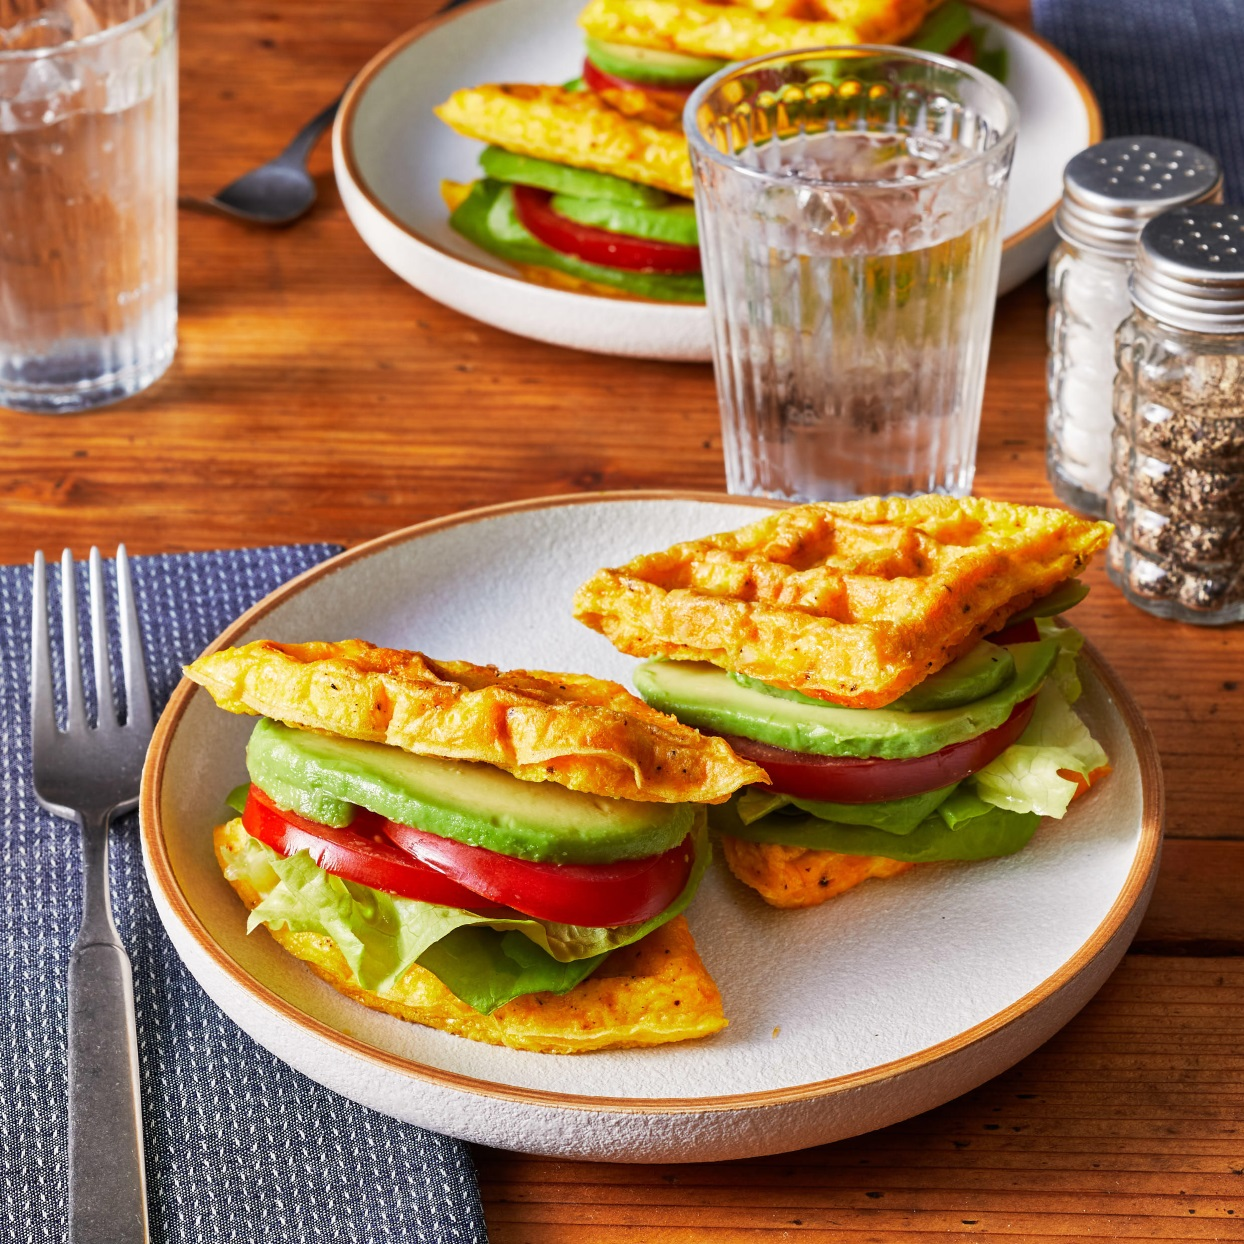 "You don't have to be on a low-carb or Keto diet to jump on the ""chaffle"" trend--chaffles are flourless waffles made from eggs and cheese. They may be gimmicky, but they're also delicious. For our chaffle sandwiches, we've added some crumbled bacon to the batter and used the chaffles to make sandwiches, filled with avocado and tomato. Enjoy a sandwich as a low-carb breakfast that also happens to be gluten-free. Source: EatingWell.com, January 2020"